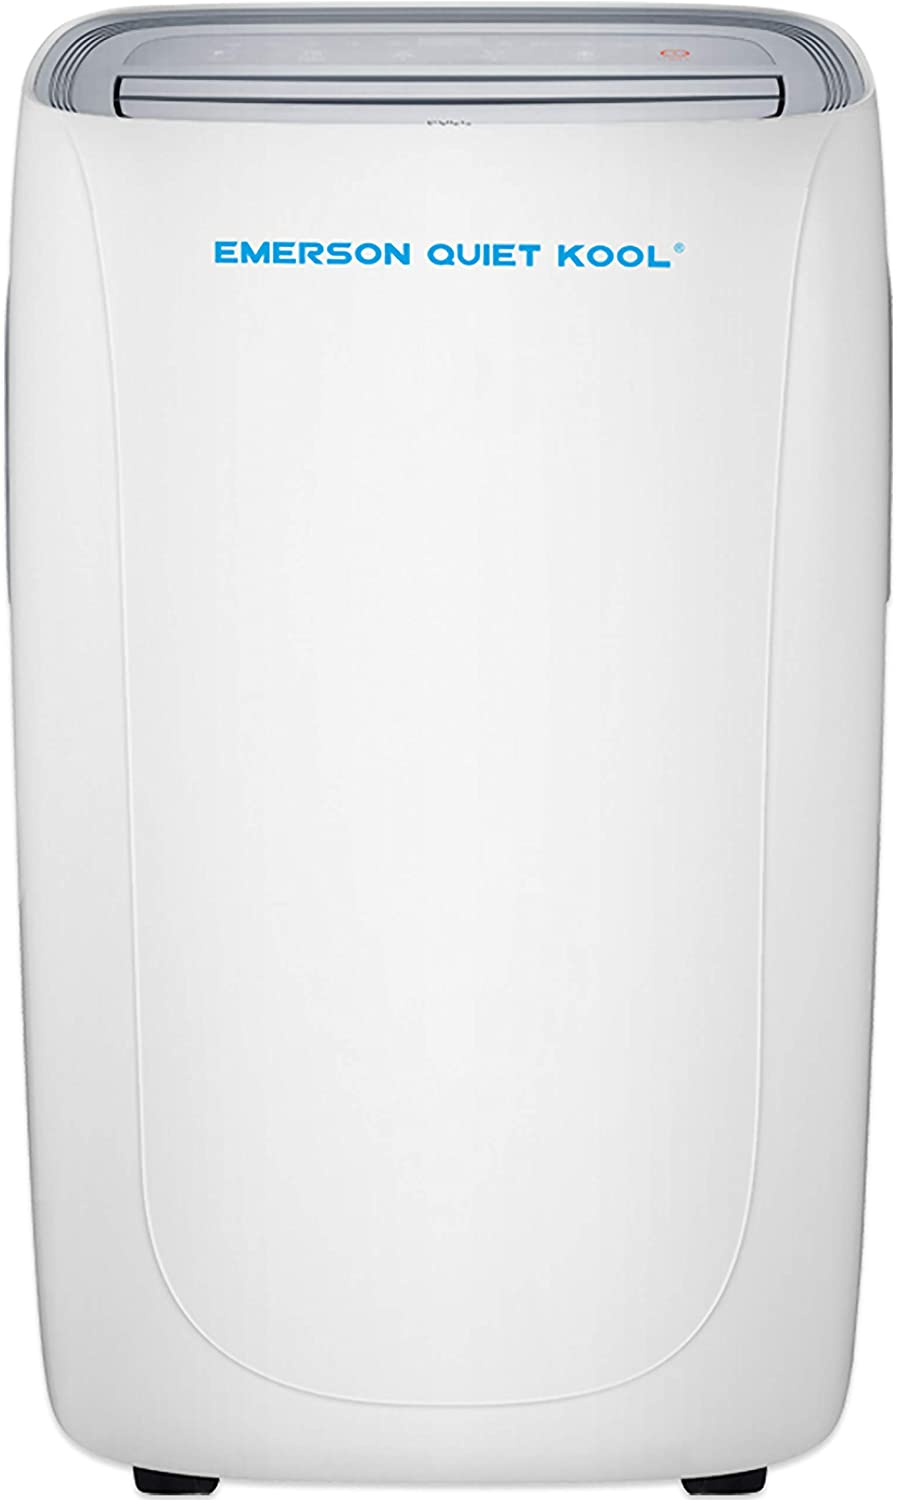 Emerson Quiet Kool SMART Wi-Fi and Voice 400-Sq. Ft Portable Air Conditioner with Remote Control for Rooms, White